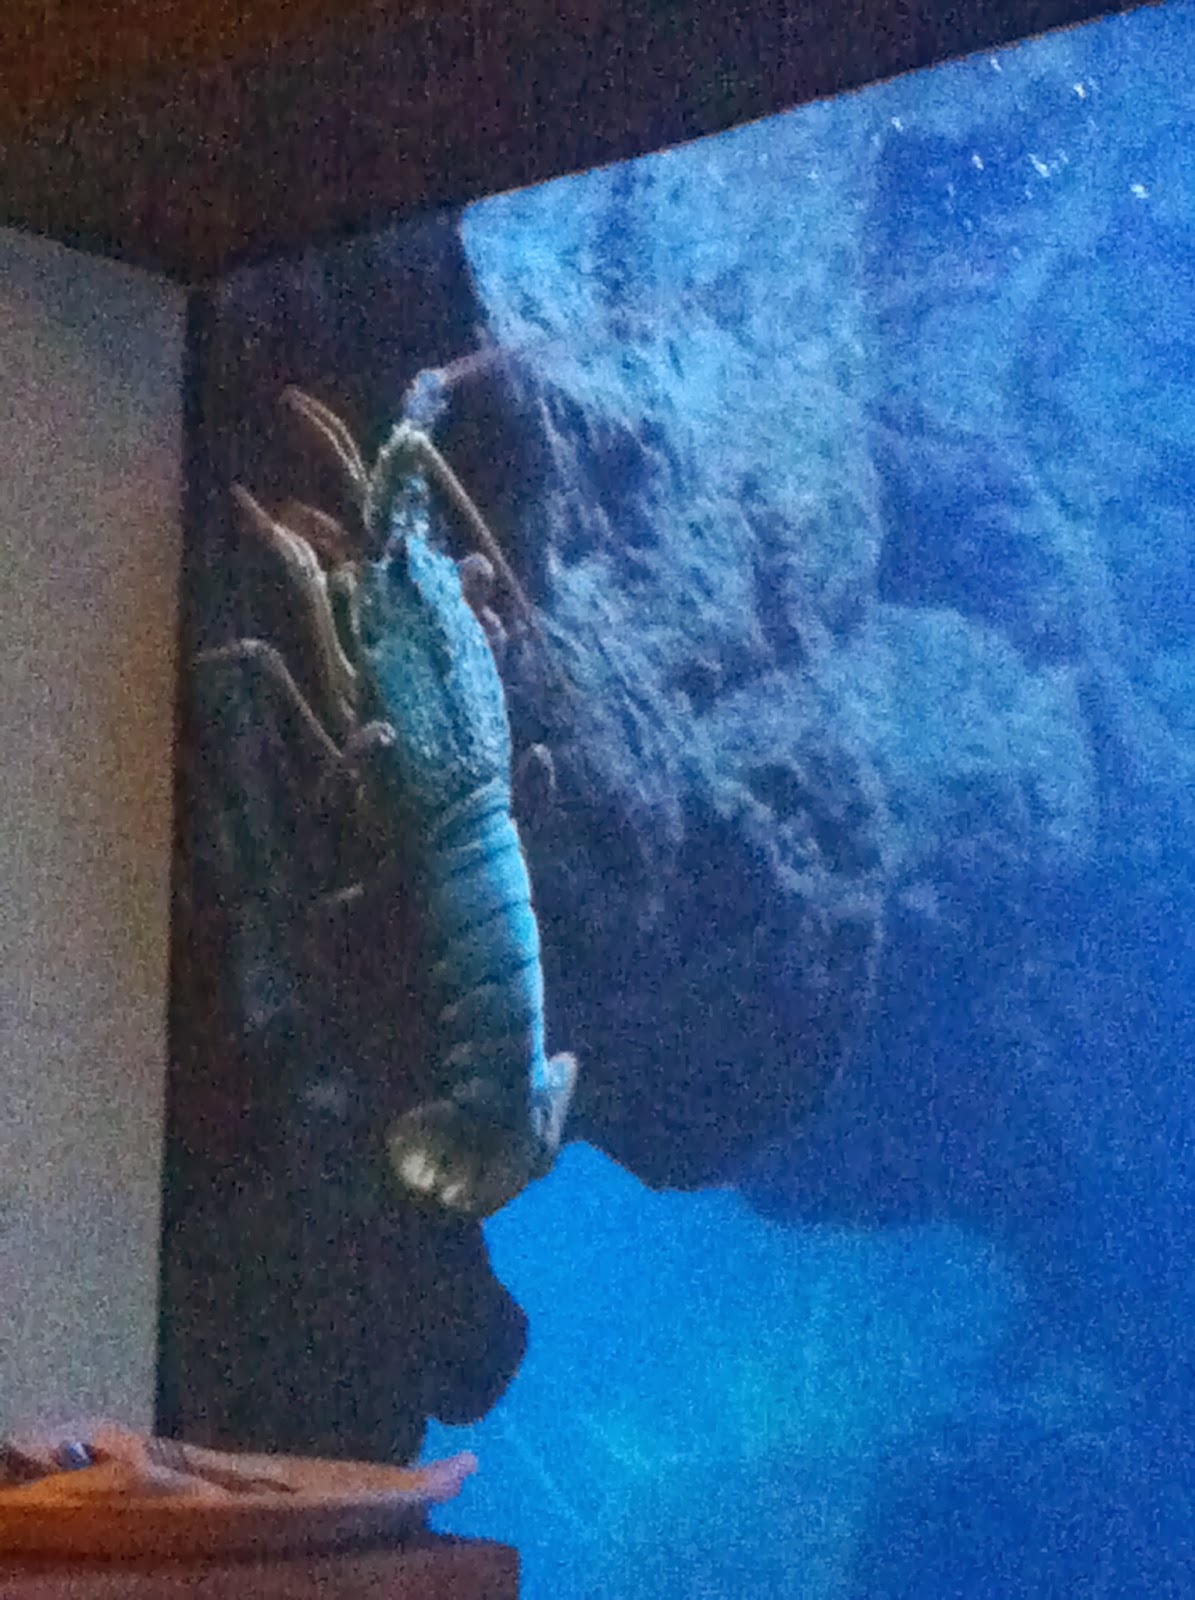 A lobster in the aquarium.